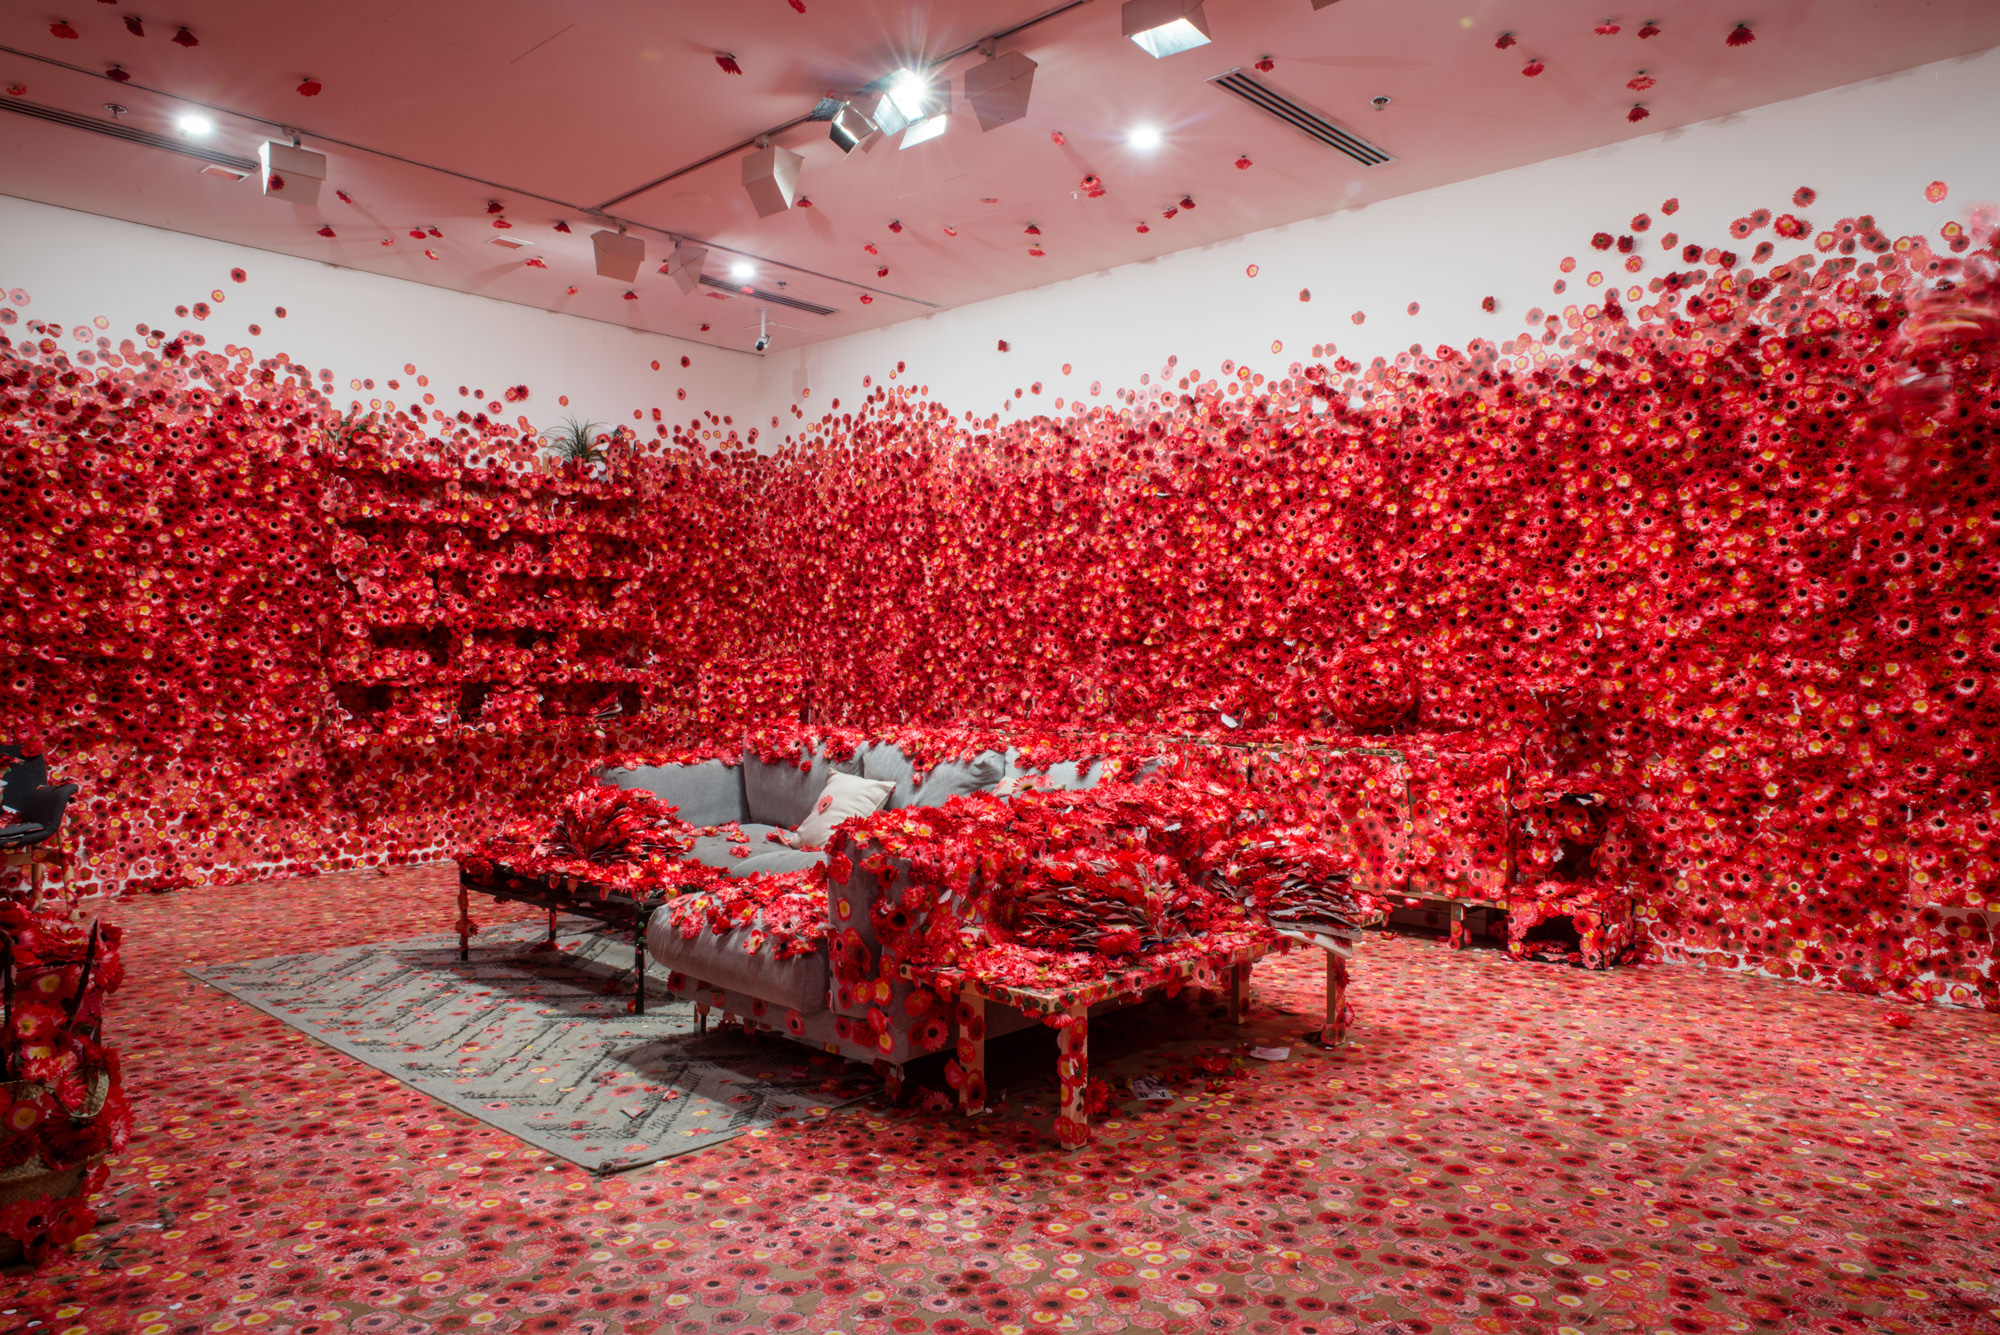 Exhibition image of Yayoi Kusama's Flower Obsession 2017 on display in NGV Triennial at NGV International 2017. Photo: Eugene Hyland